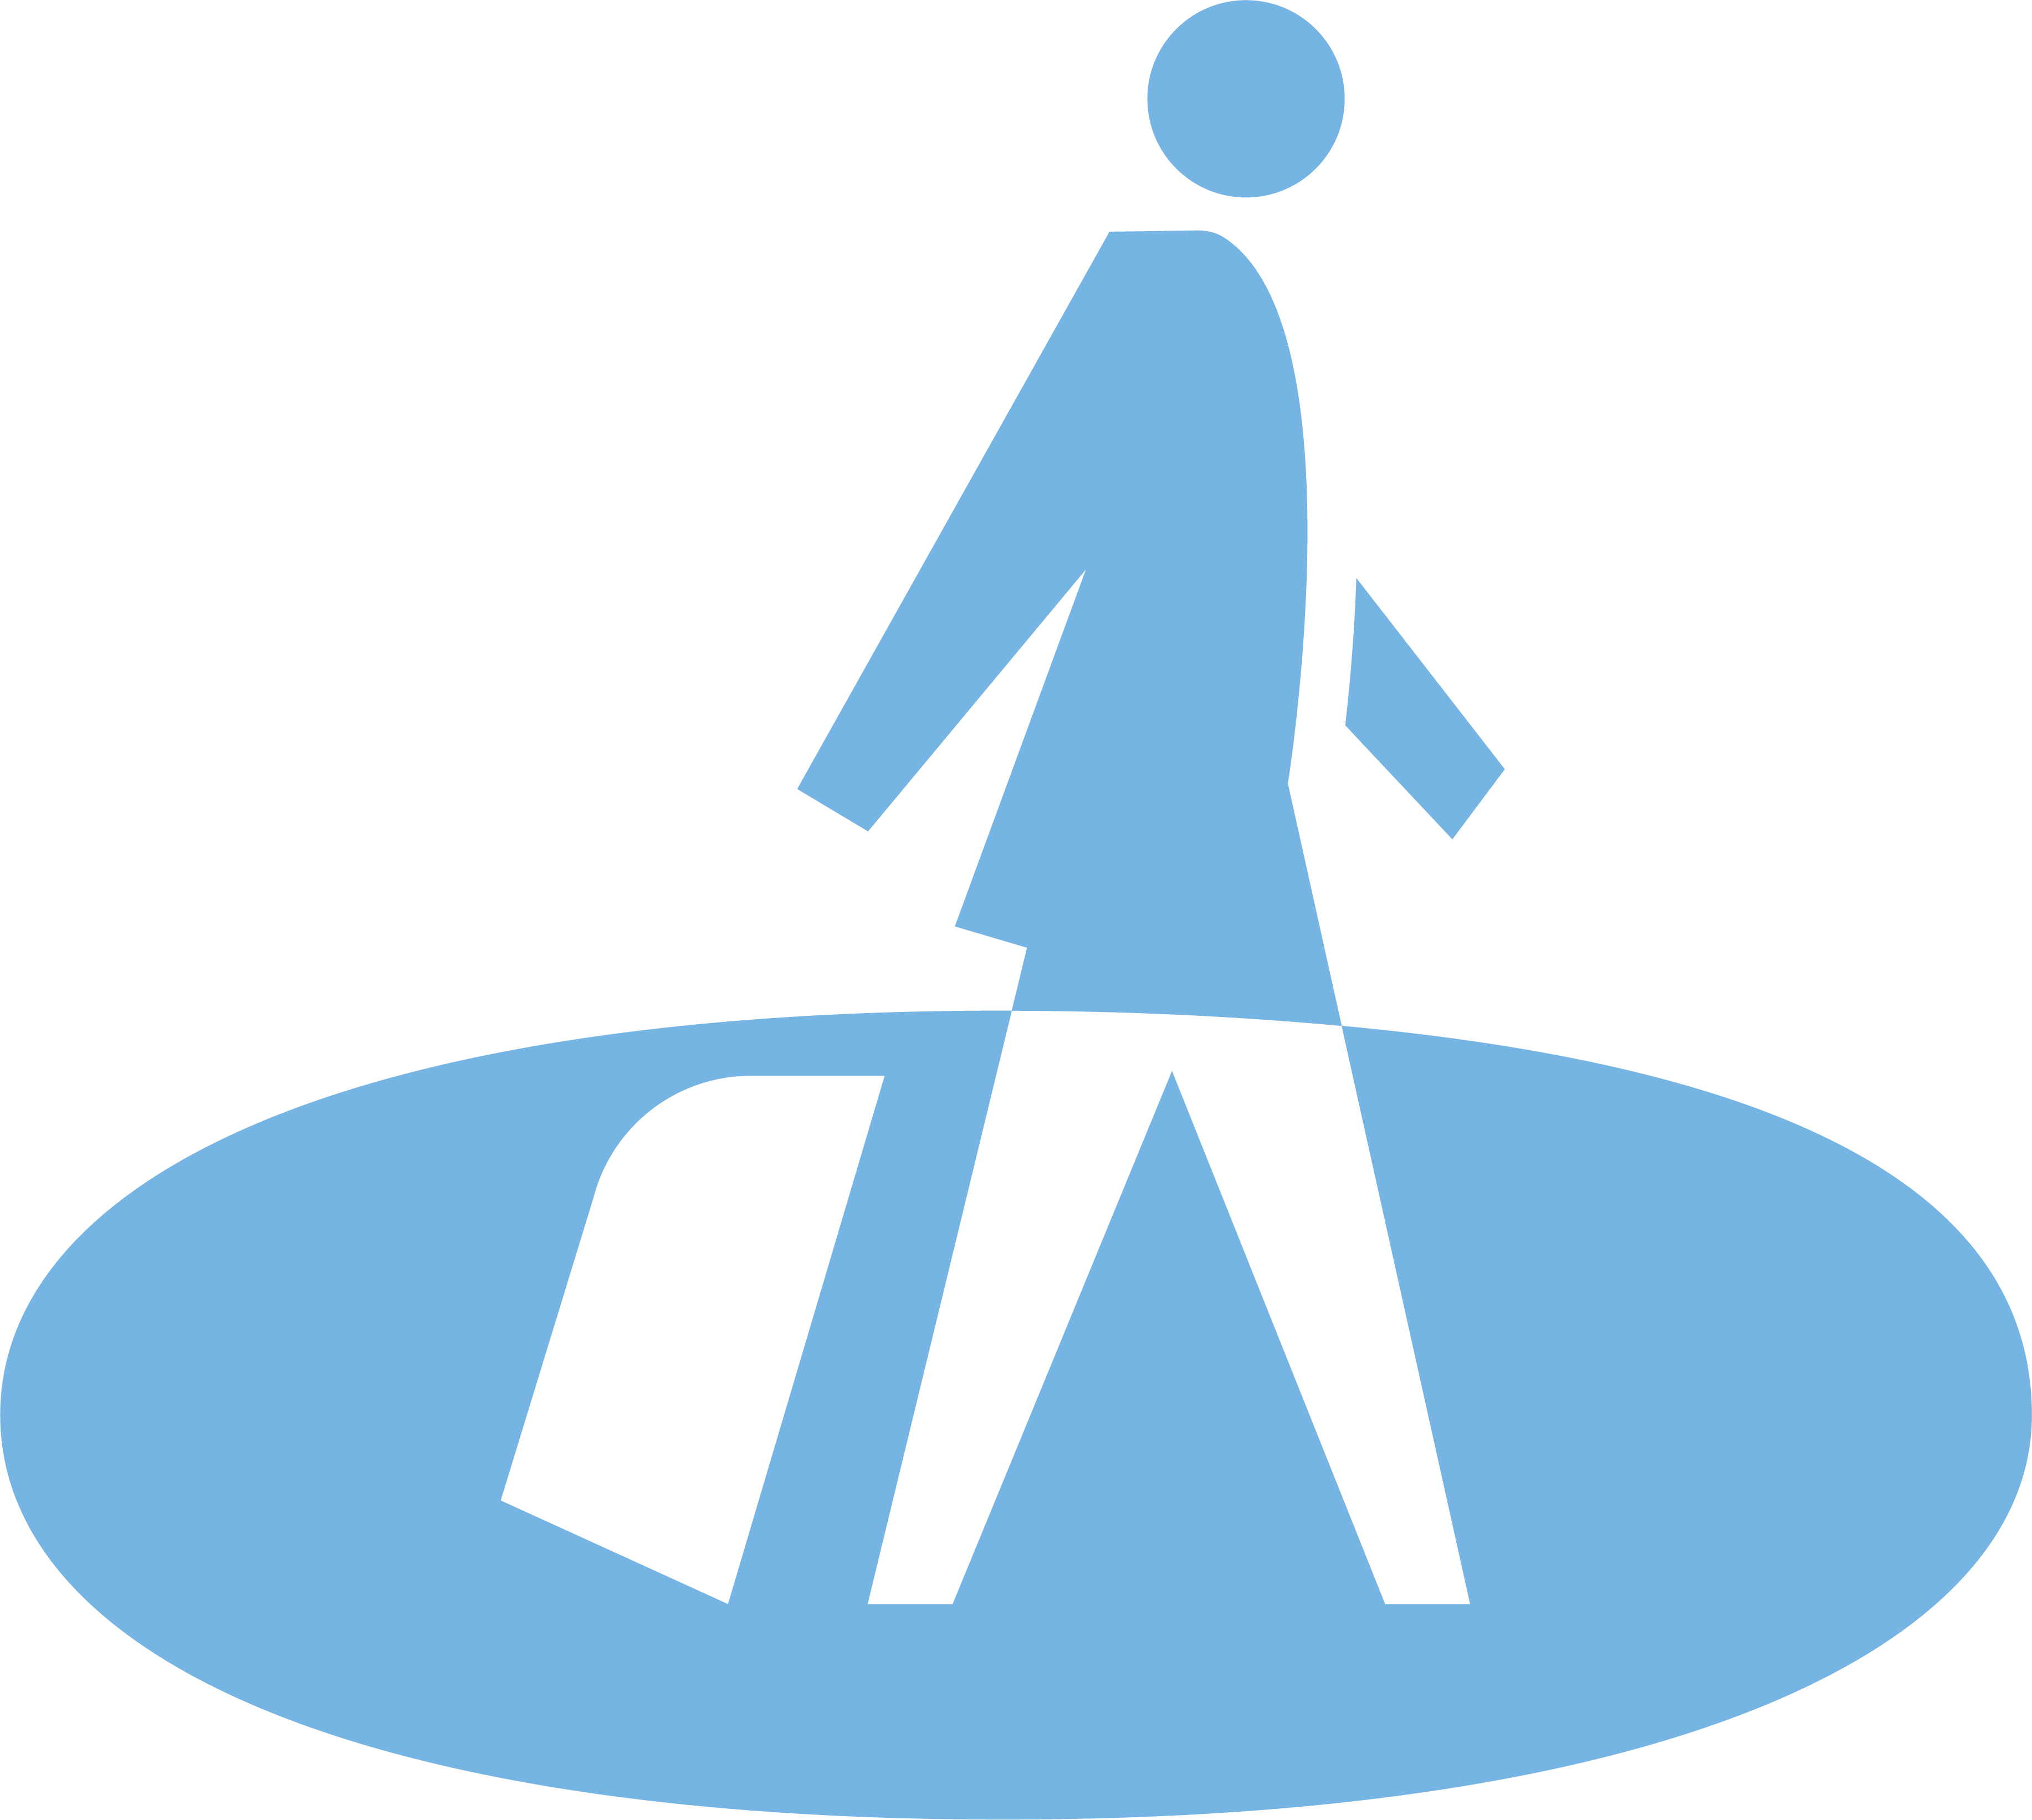 person walking with suitcase icon